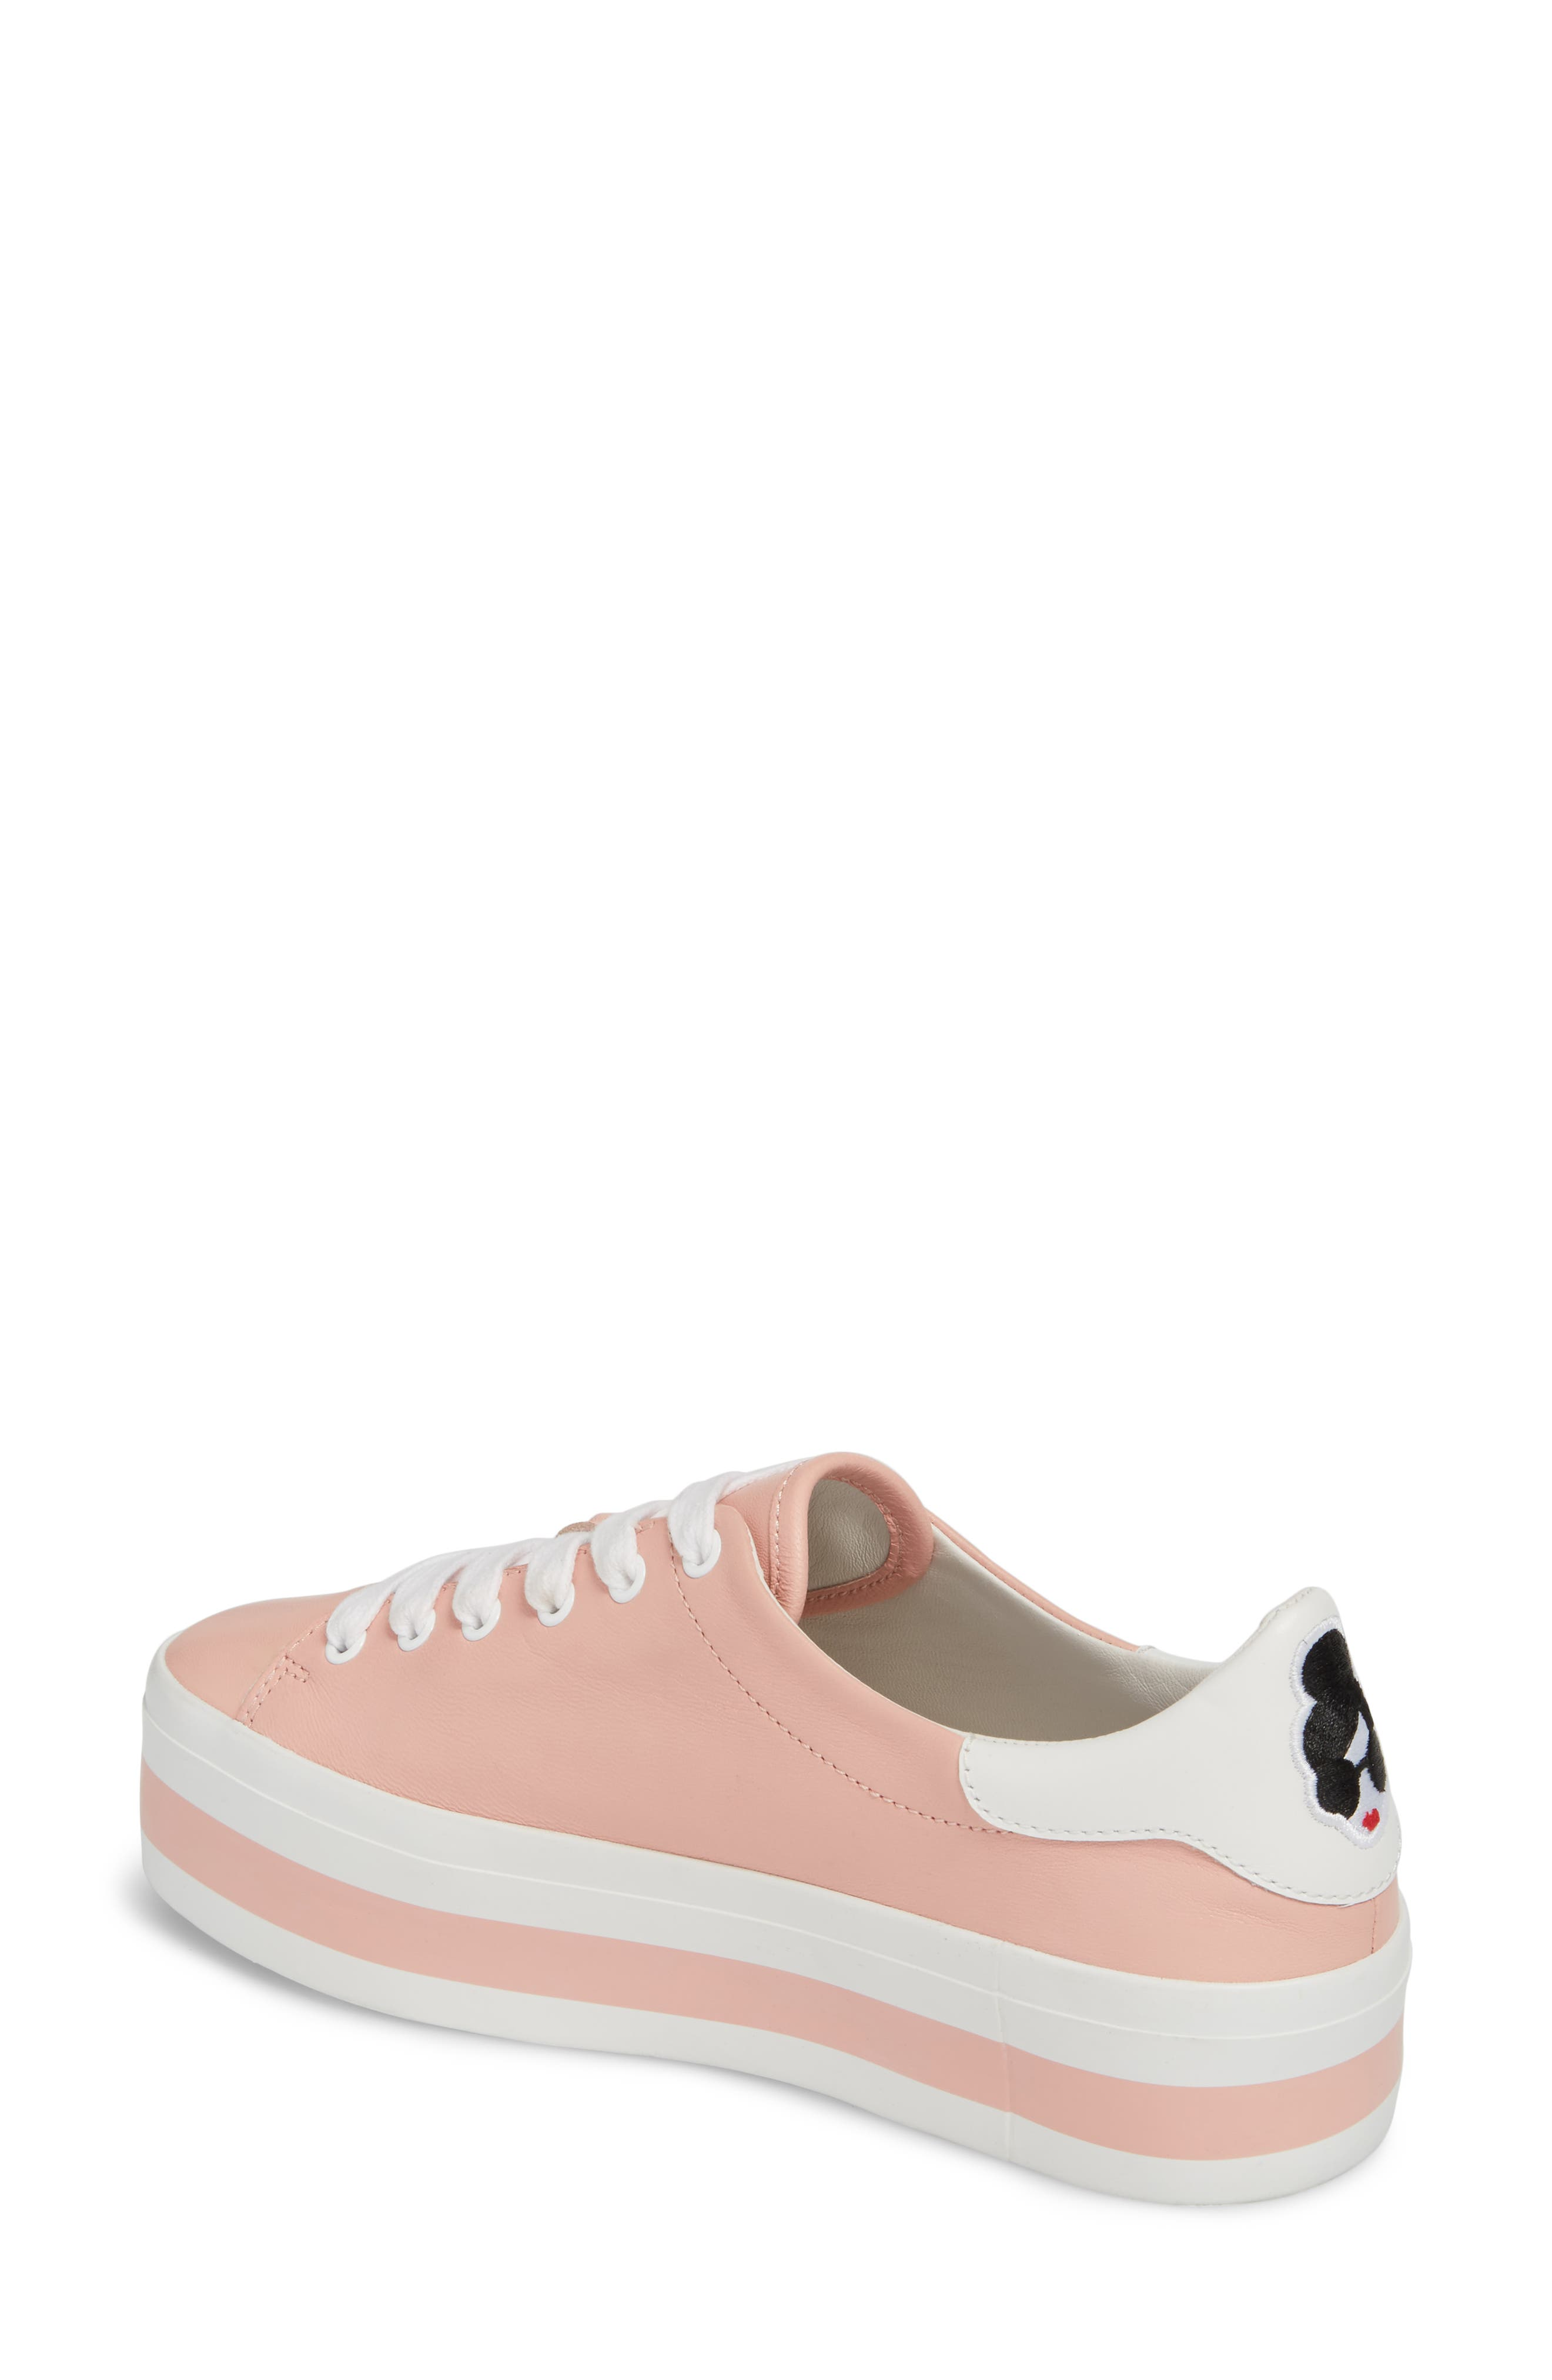 Ezra Flatform Sneaker,                             Alternate thumbnail 2, color,                             Perfect Pink / Pure White